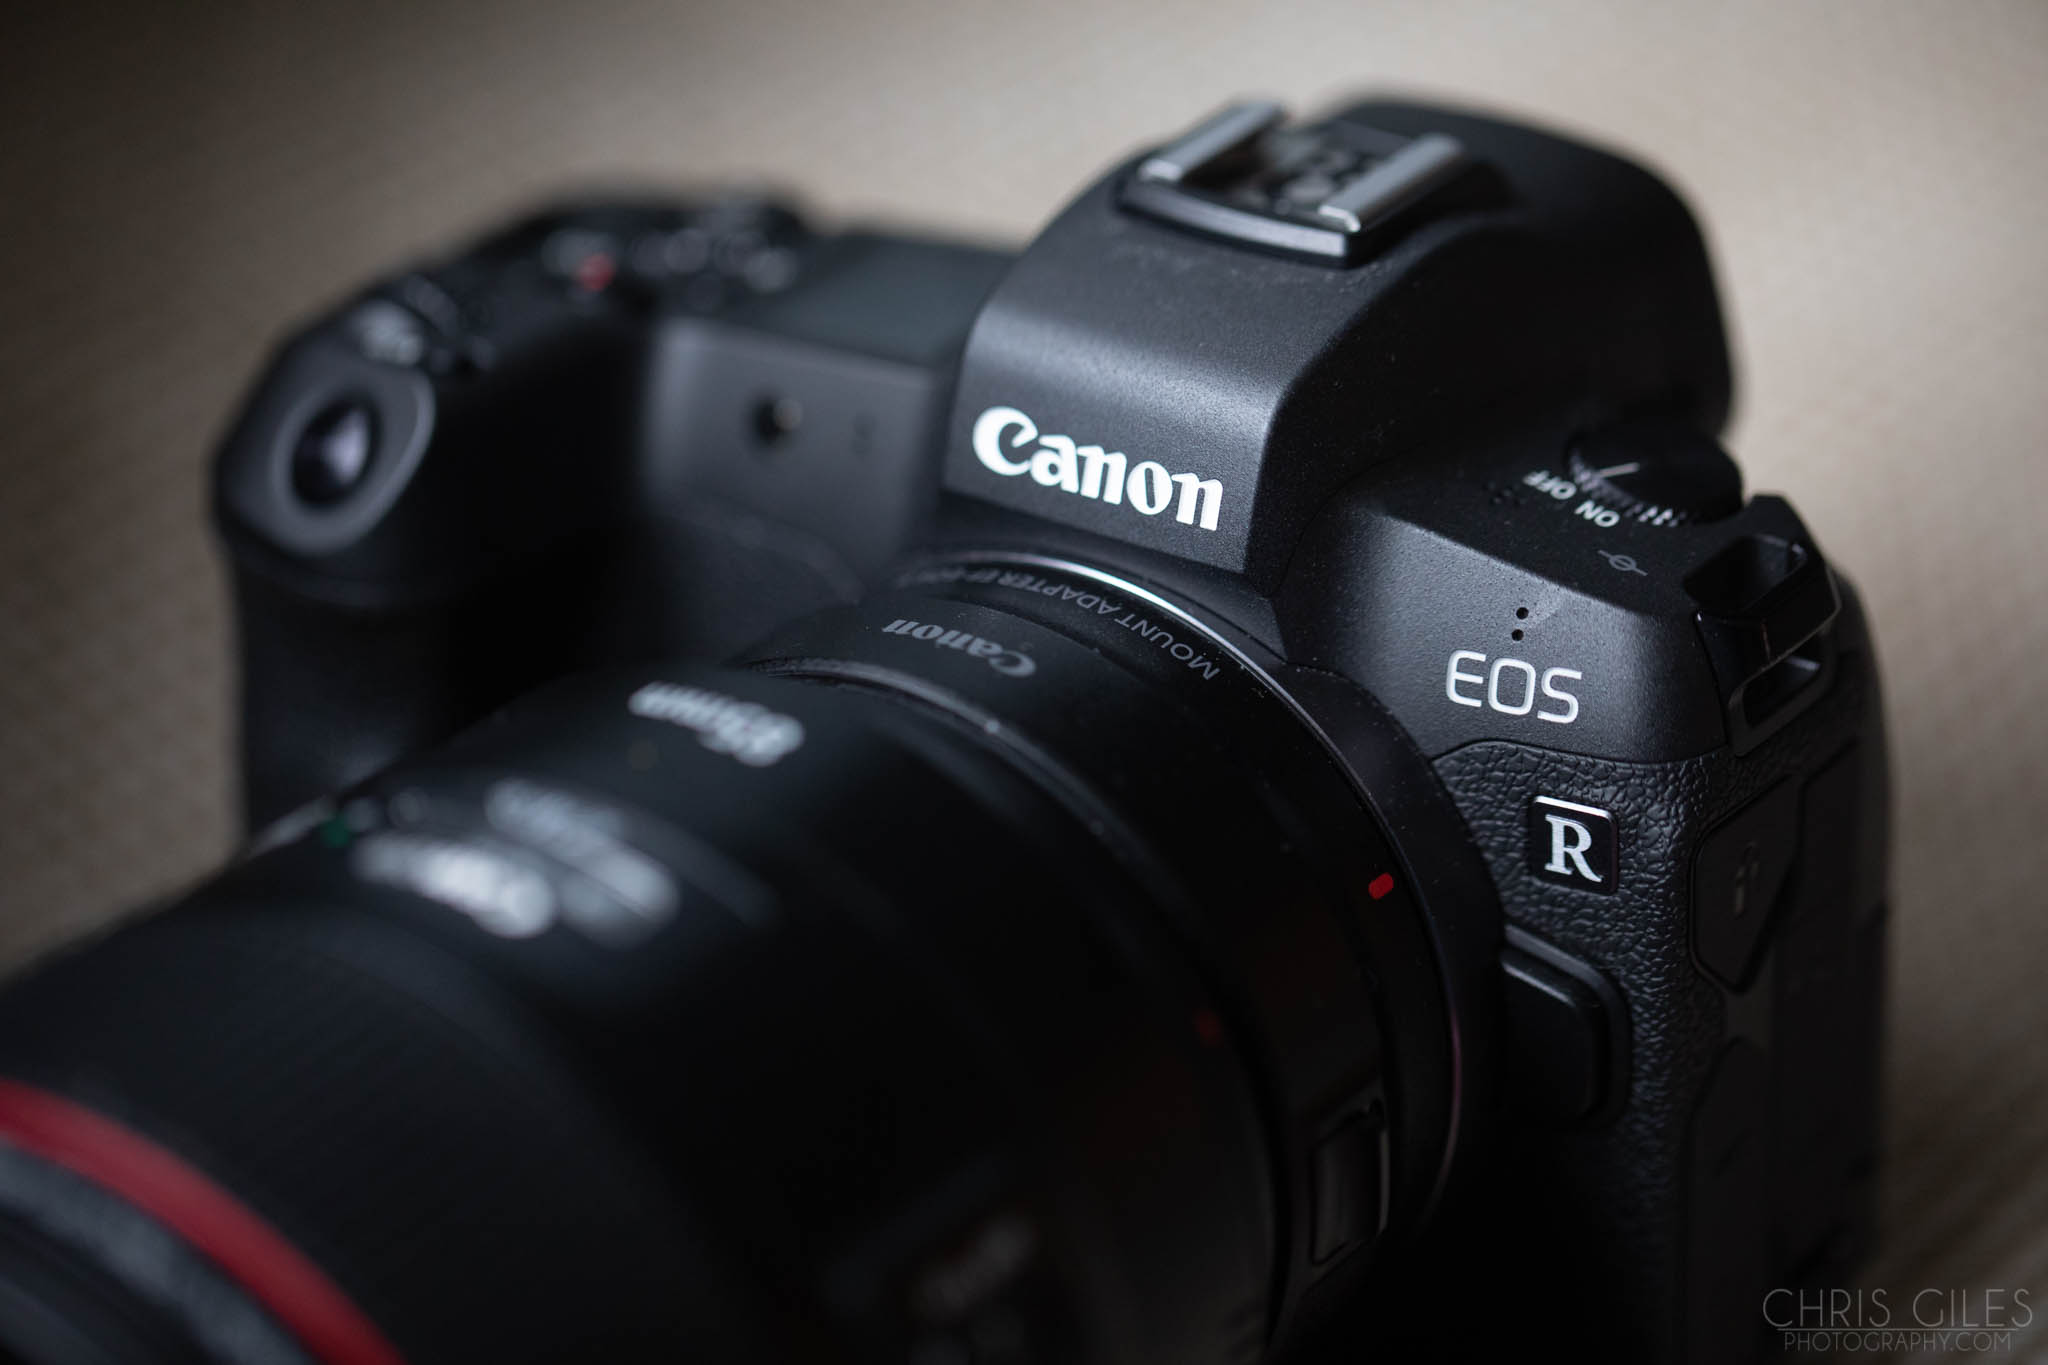 The Canon EOS R Review